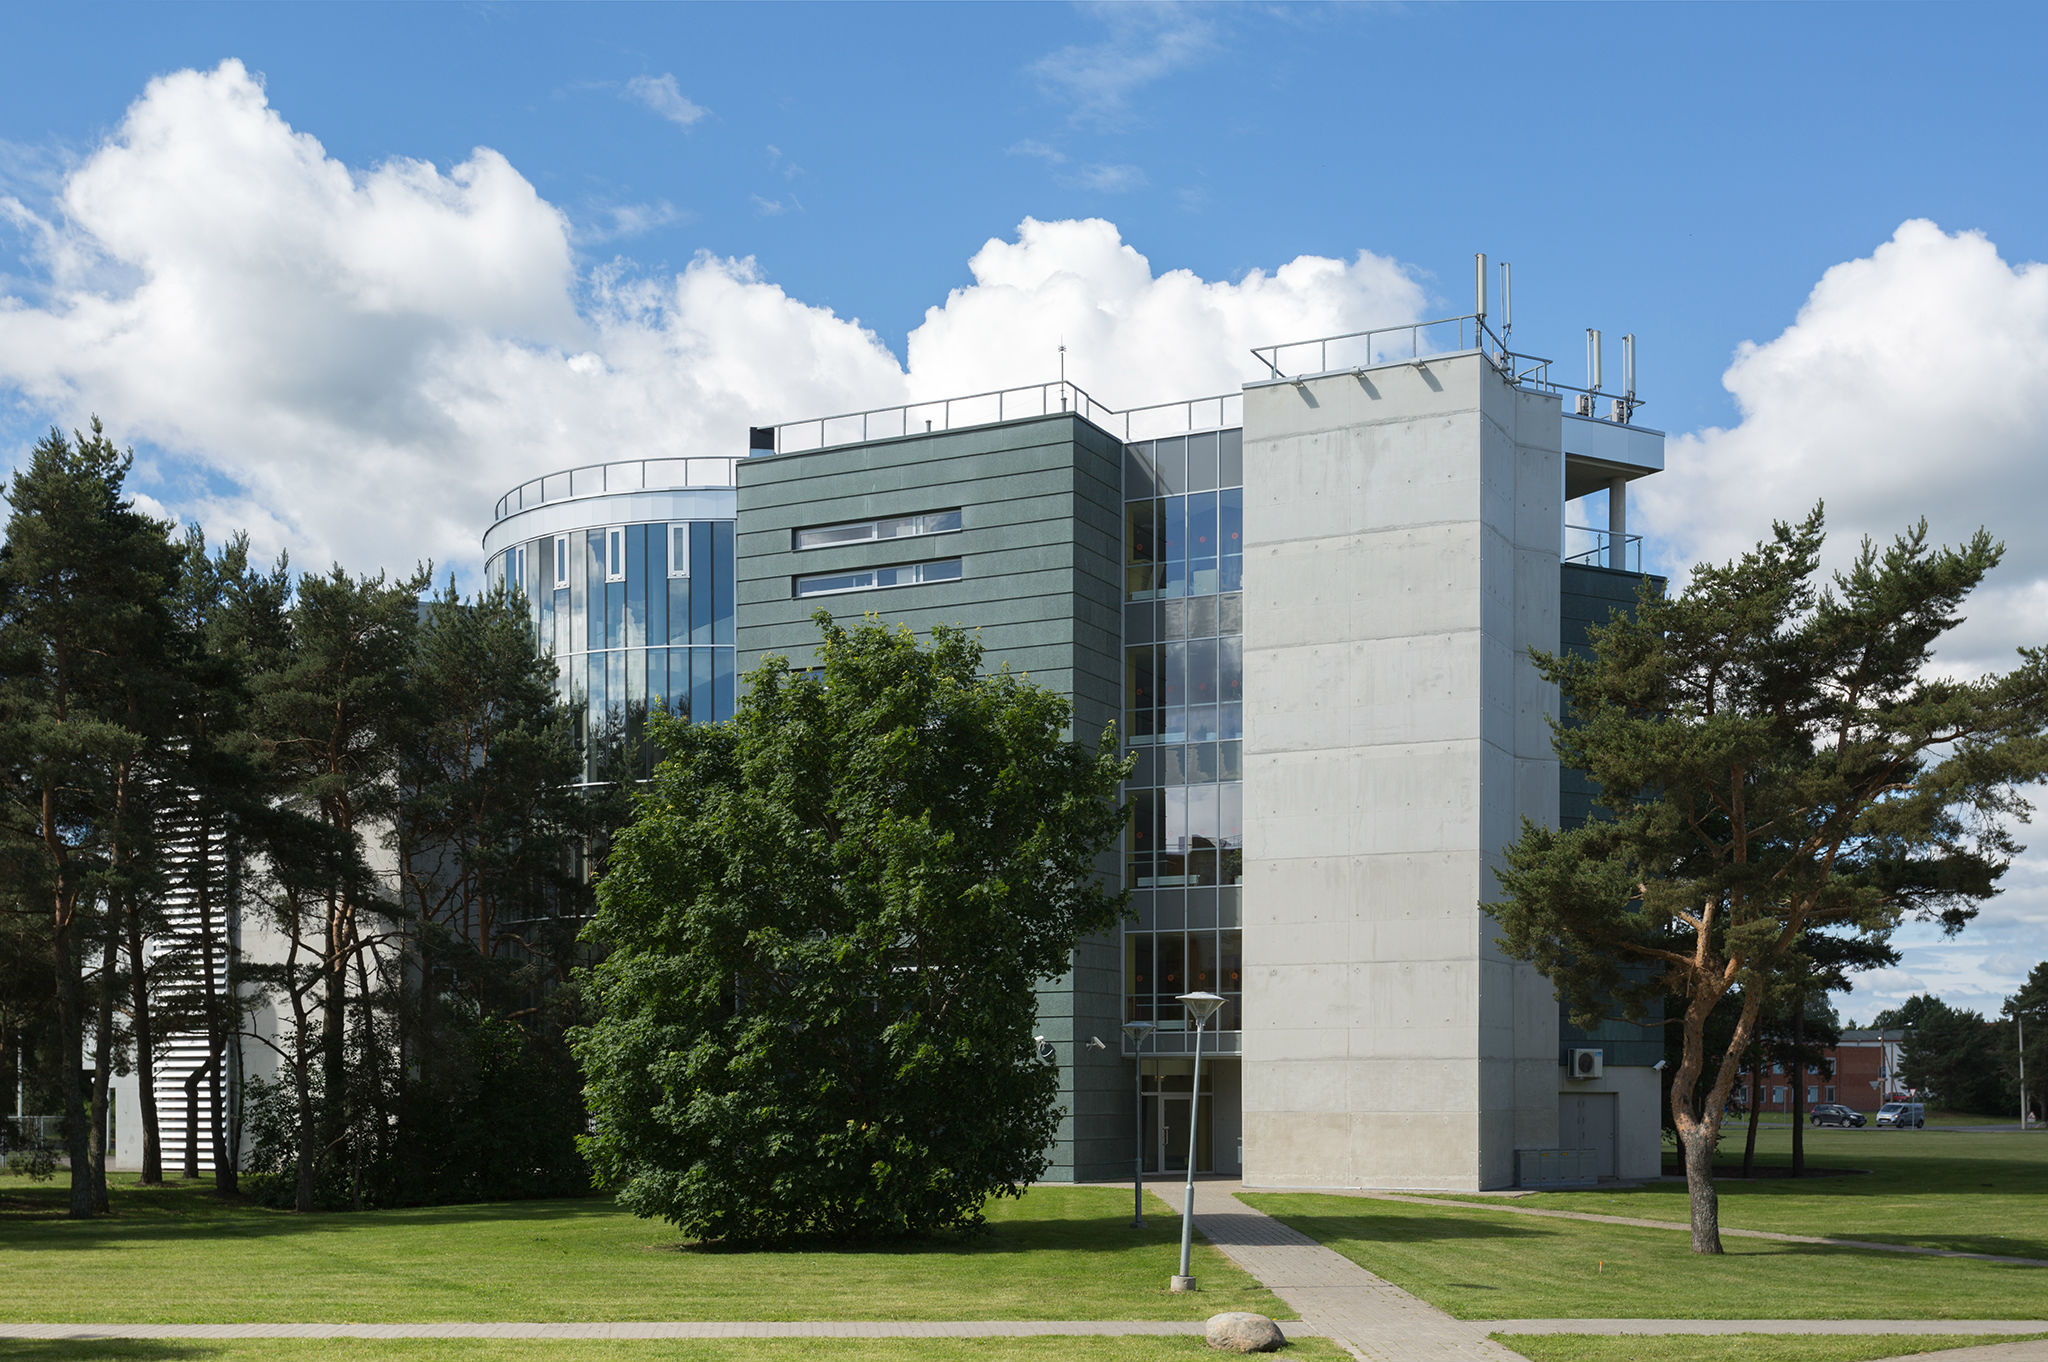 ESTONIAN INFORMATION TECHNOLOGY COLLEGE